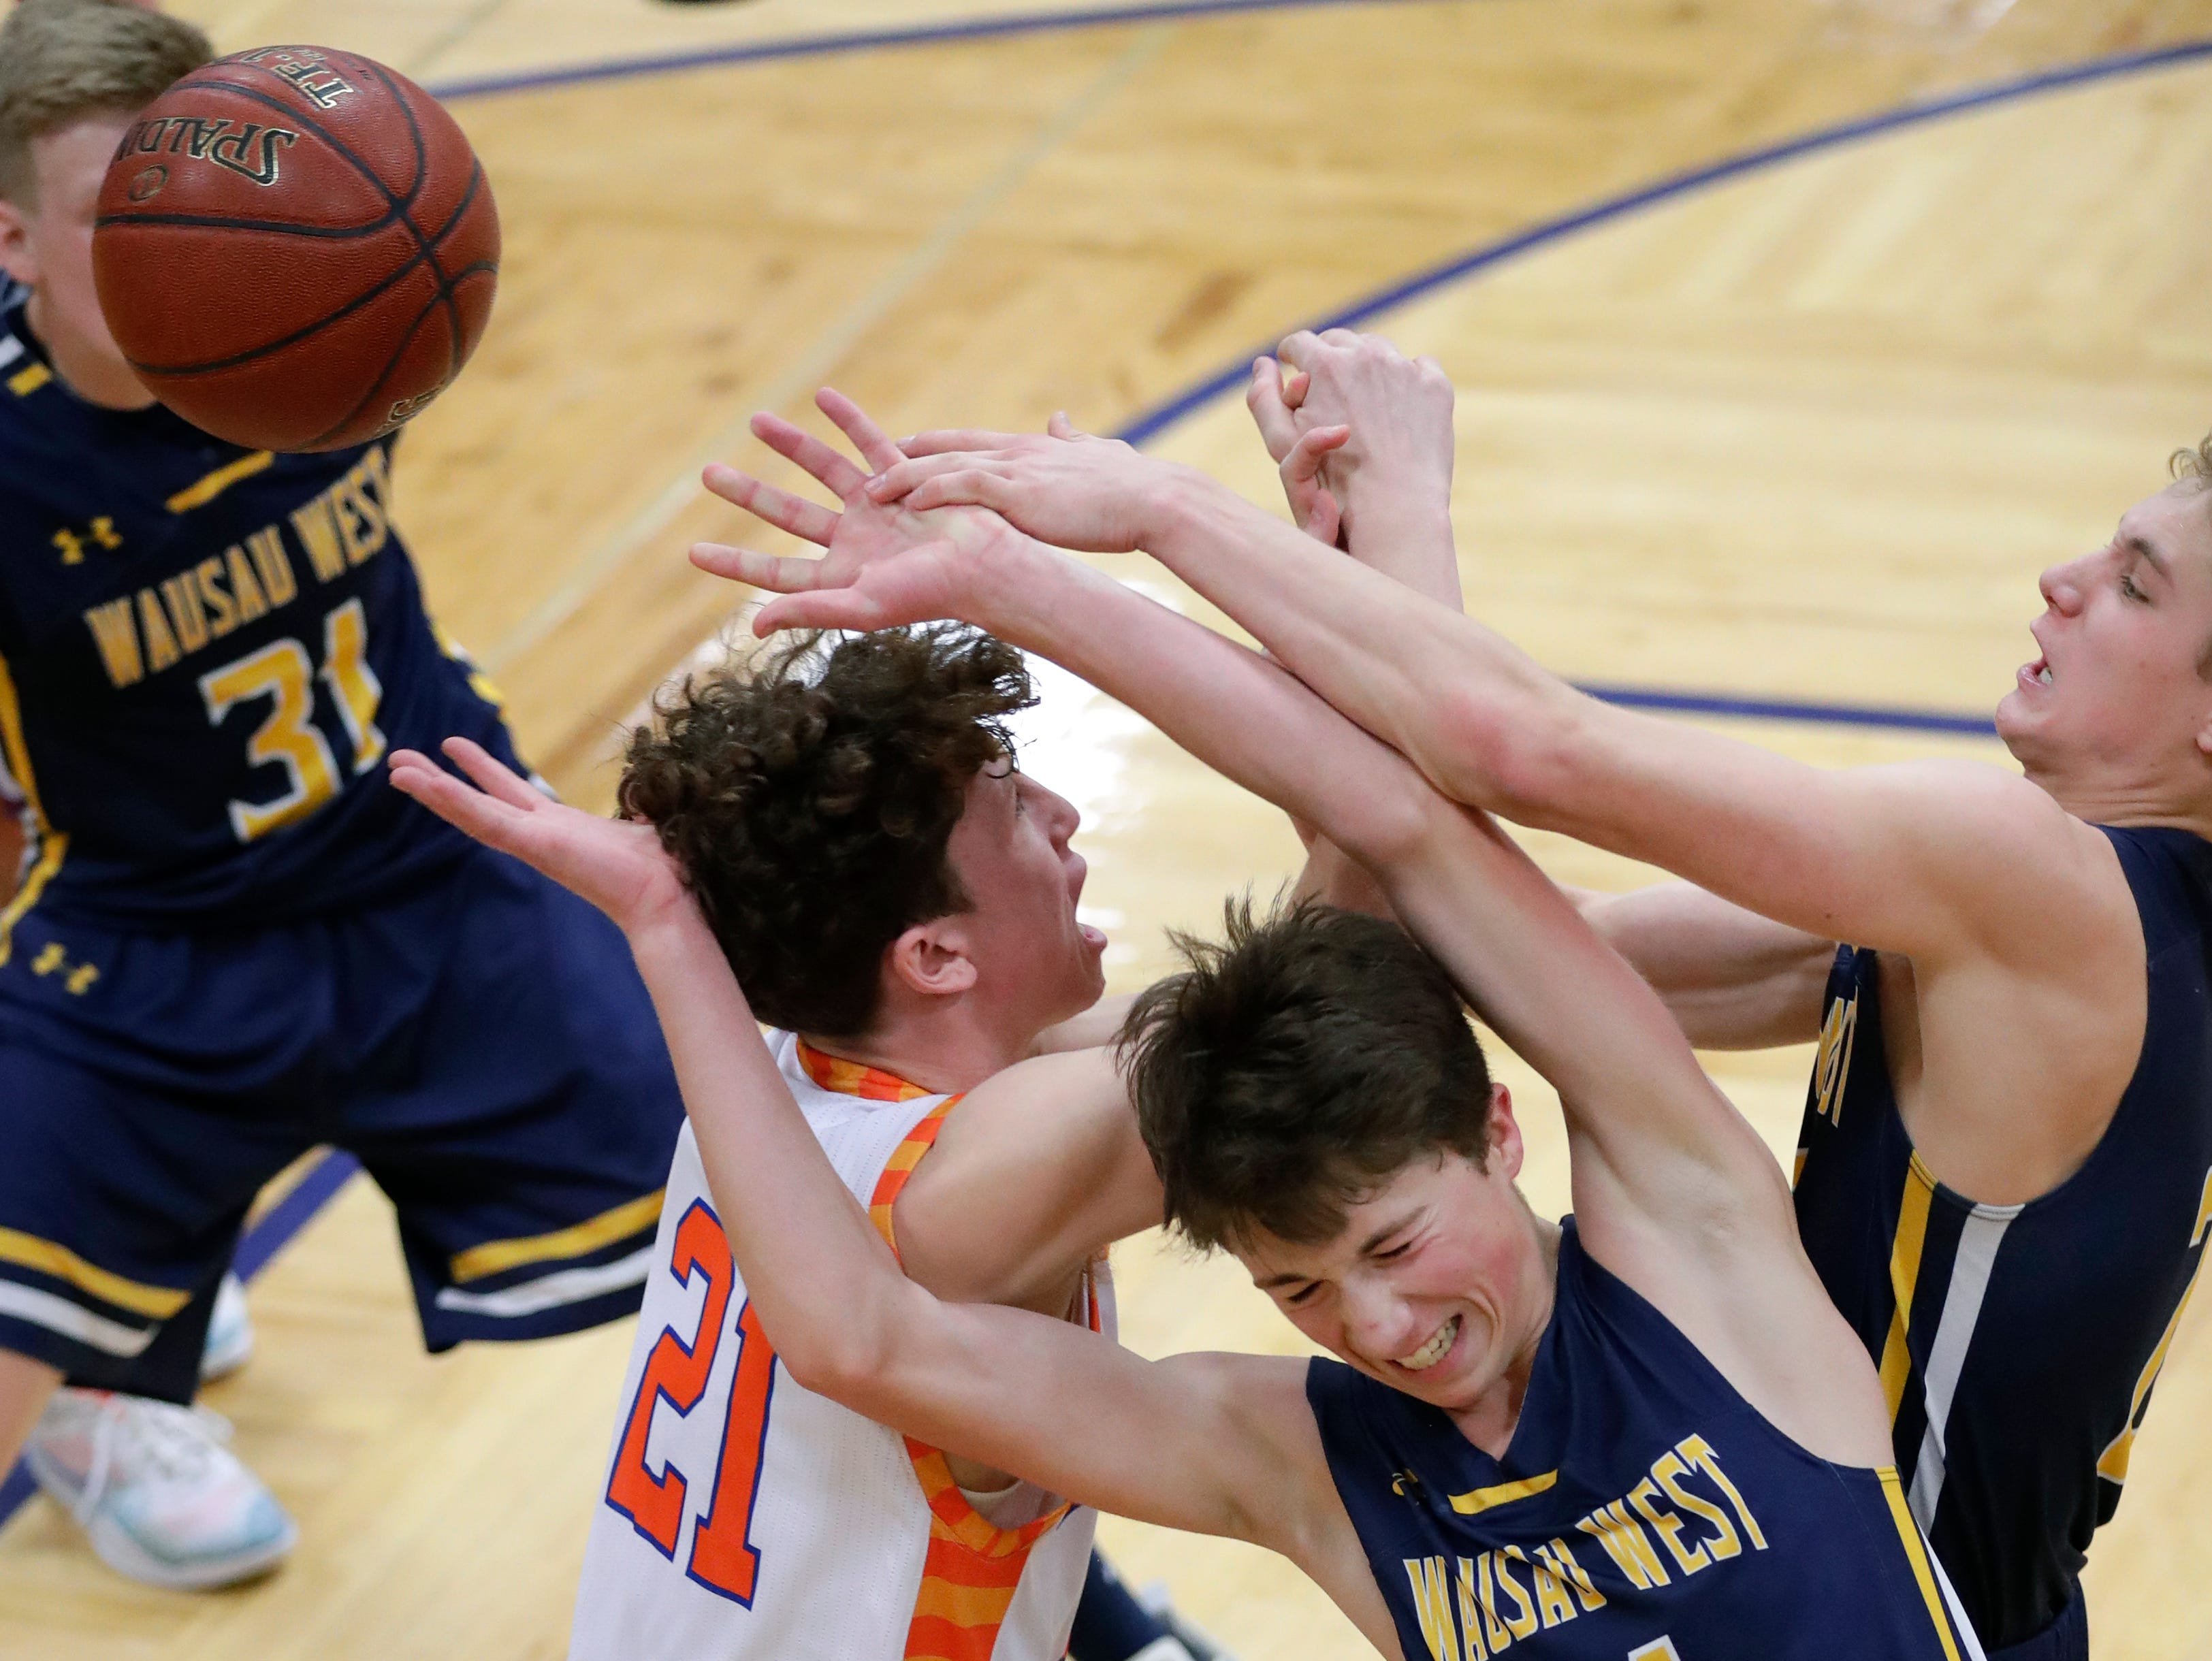 Appleton West  High School's Will Mahoney (21) battles for a rebound against Wausau West High School's Tim Deloye (11) and Mitchell Zahurones (2) during their boys basketball game Friday, December 28, 2018, in Appleton, Wis. Dan Powers/USA TODAY NETWORK-Wisconsin